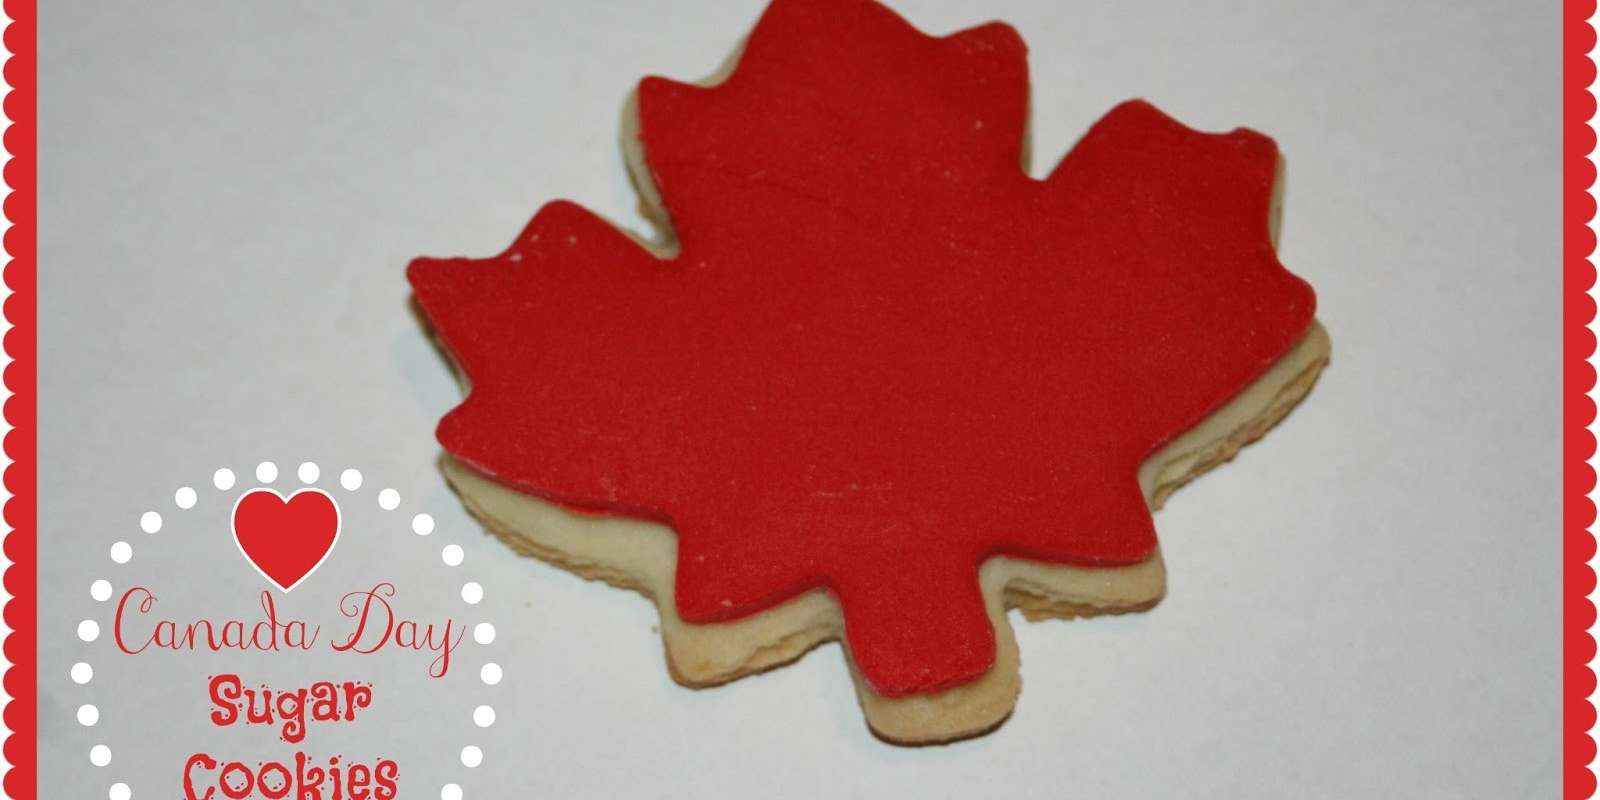 Canada Day Sugar Cookies